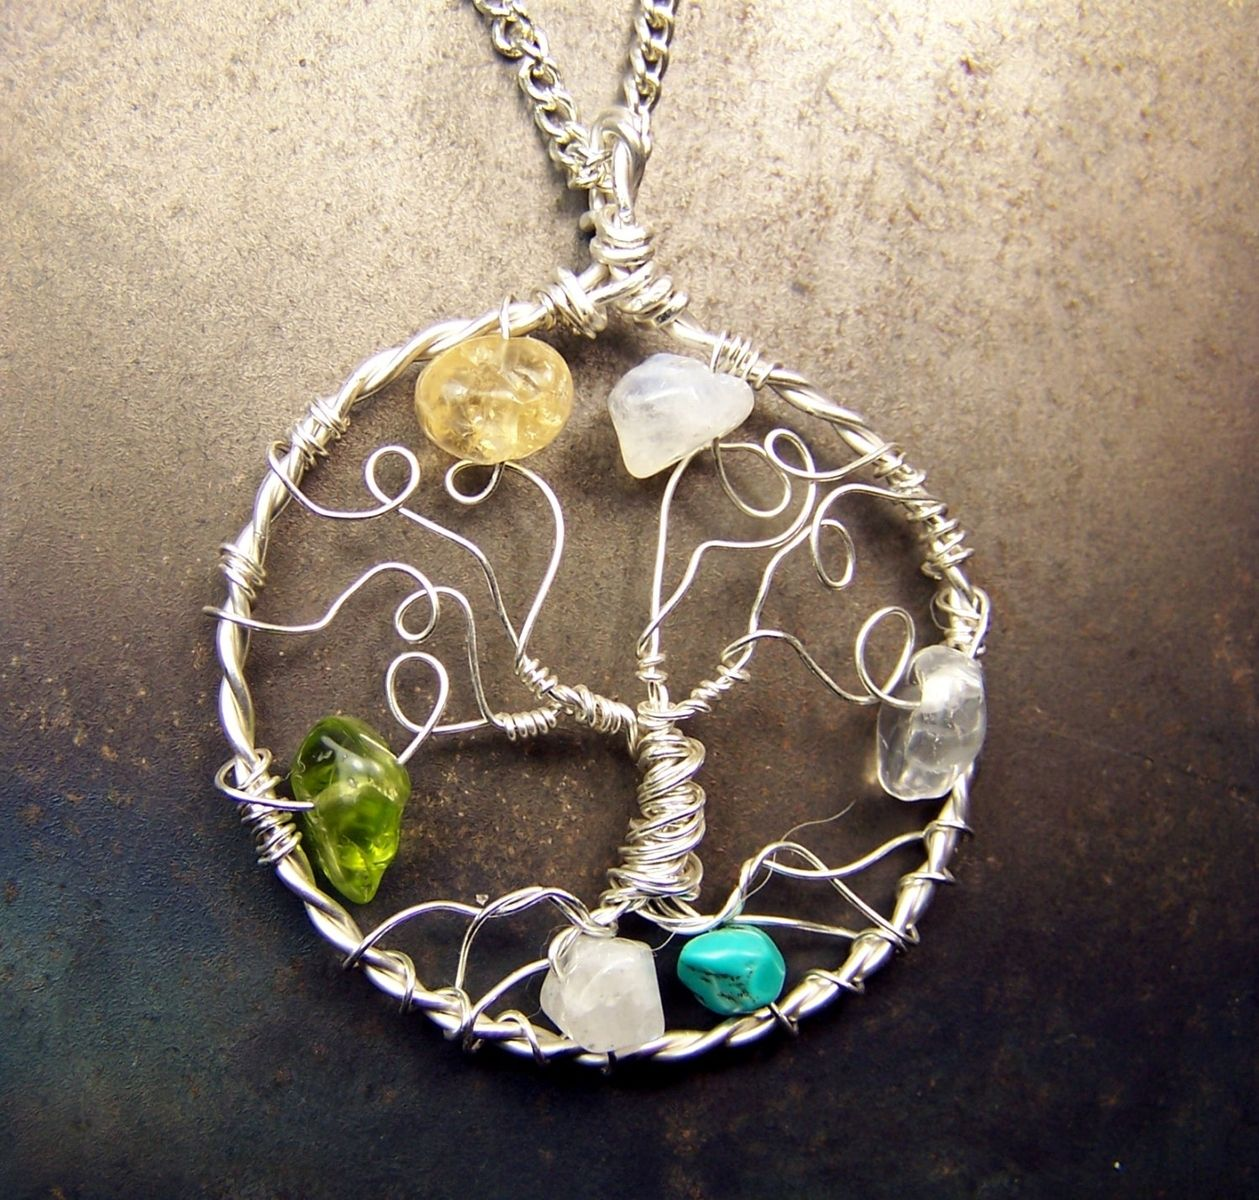 Buy a hand made genealogy family tree necklace pendant tree of custom made genealogy family tree necklace pendant tree of life gemstone birthstone necklace aloadofball Images